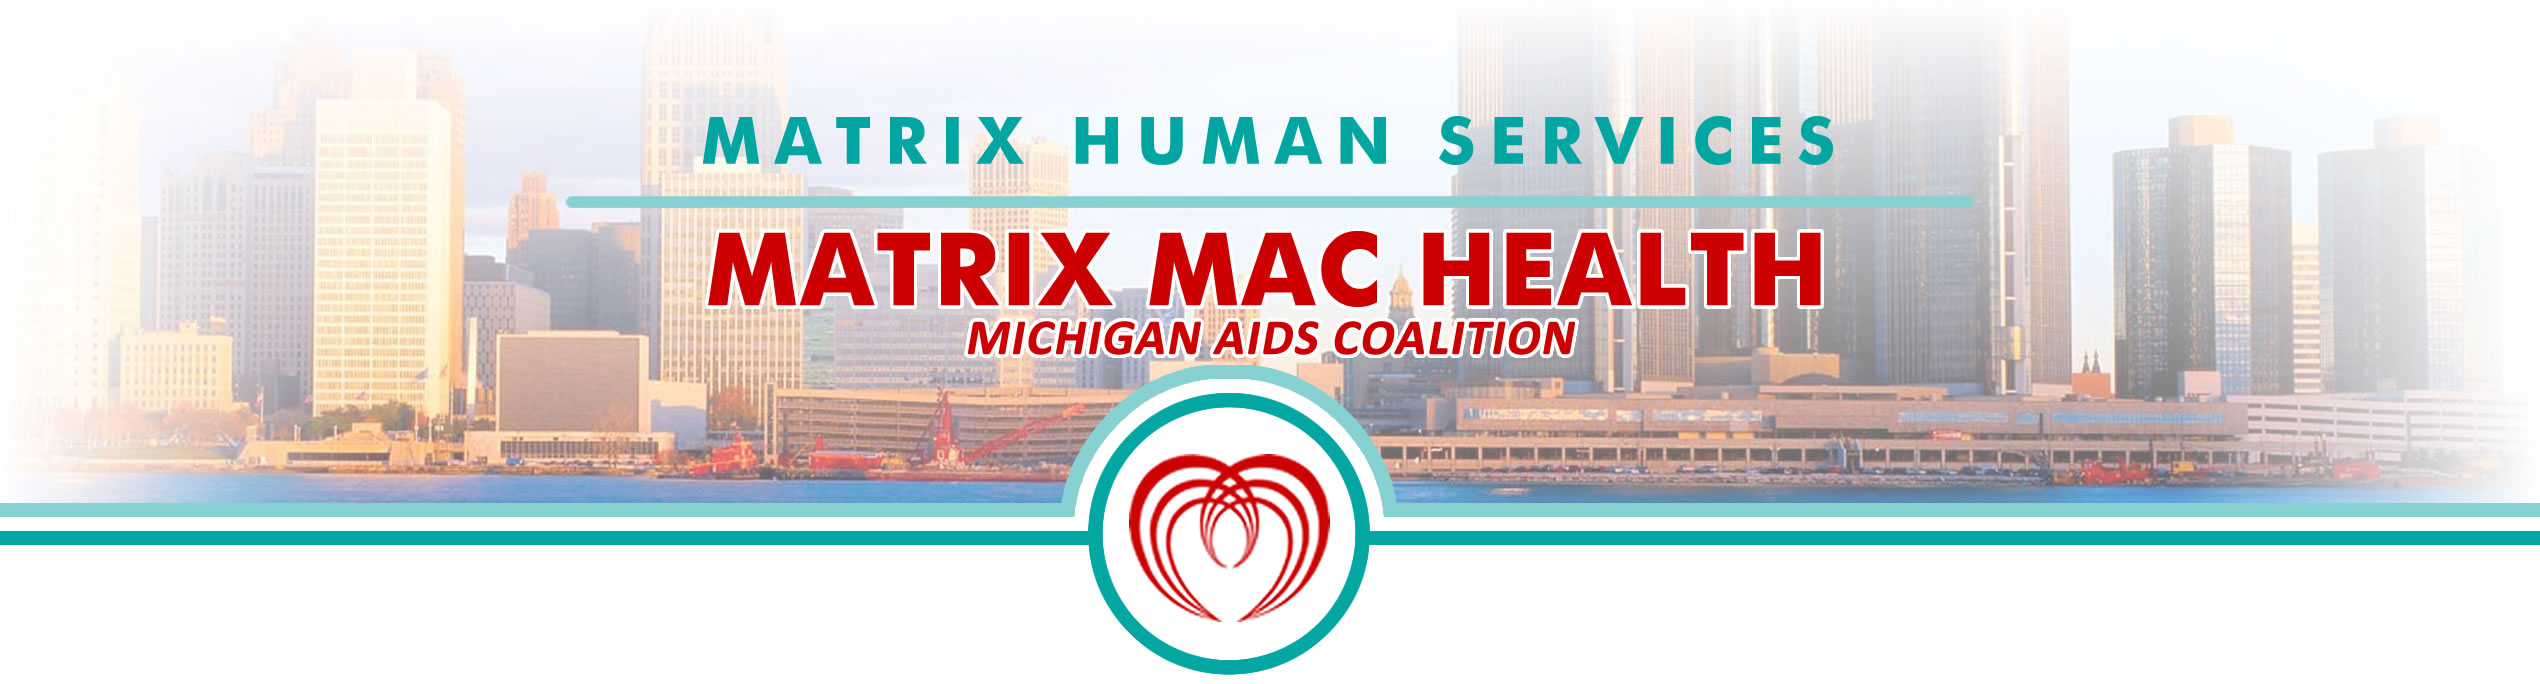 Matrix MAC Health - Michigan AIDS Coalition - HIV AIDS